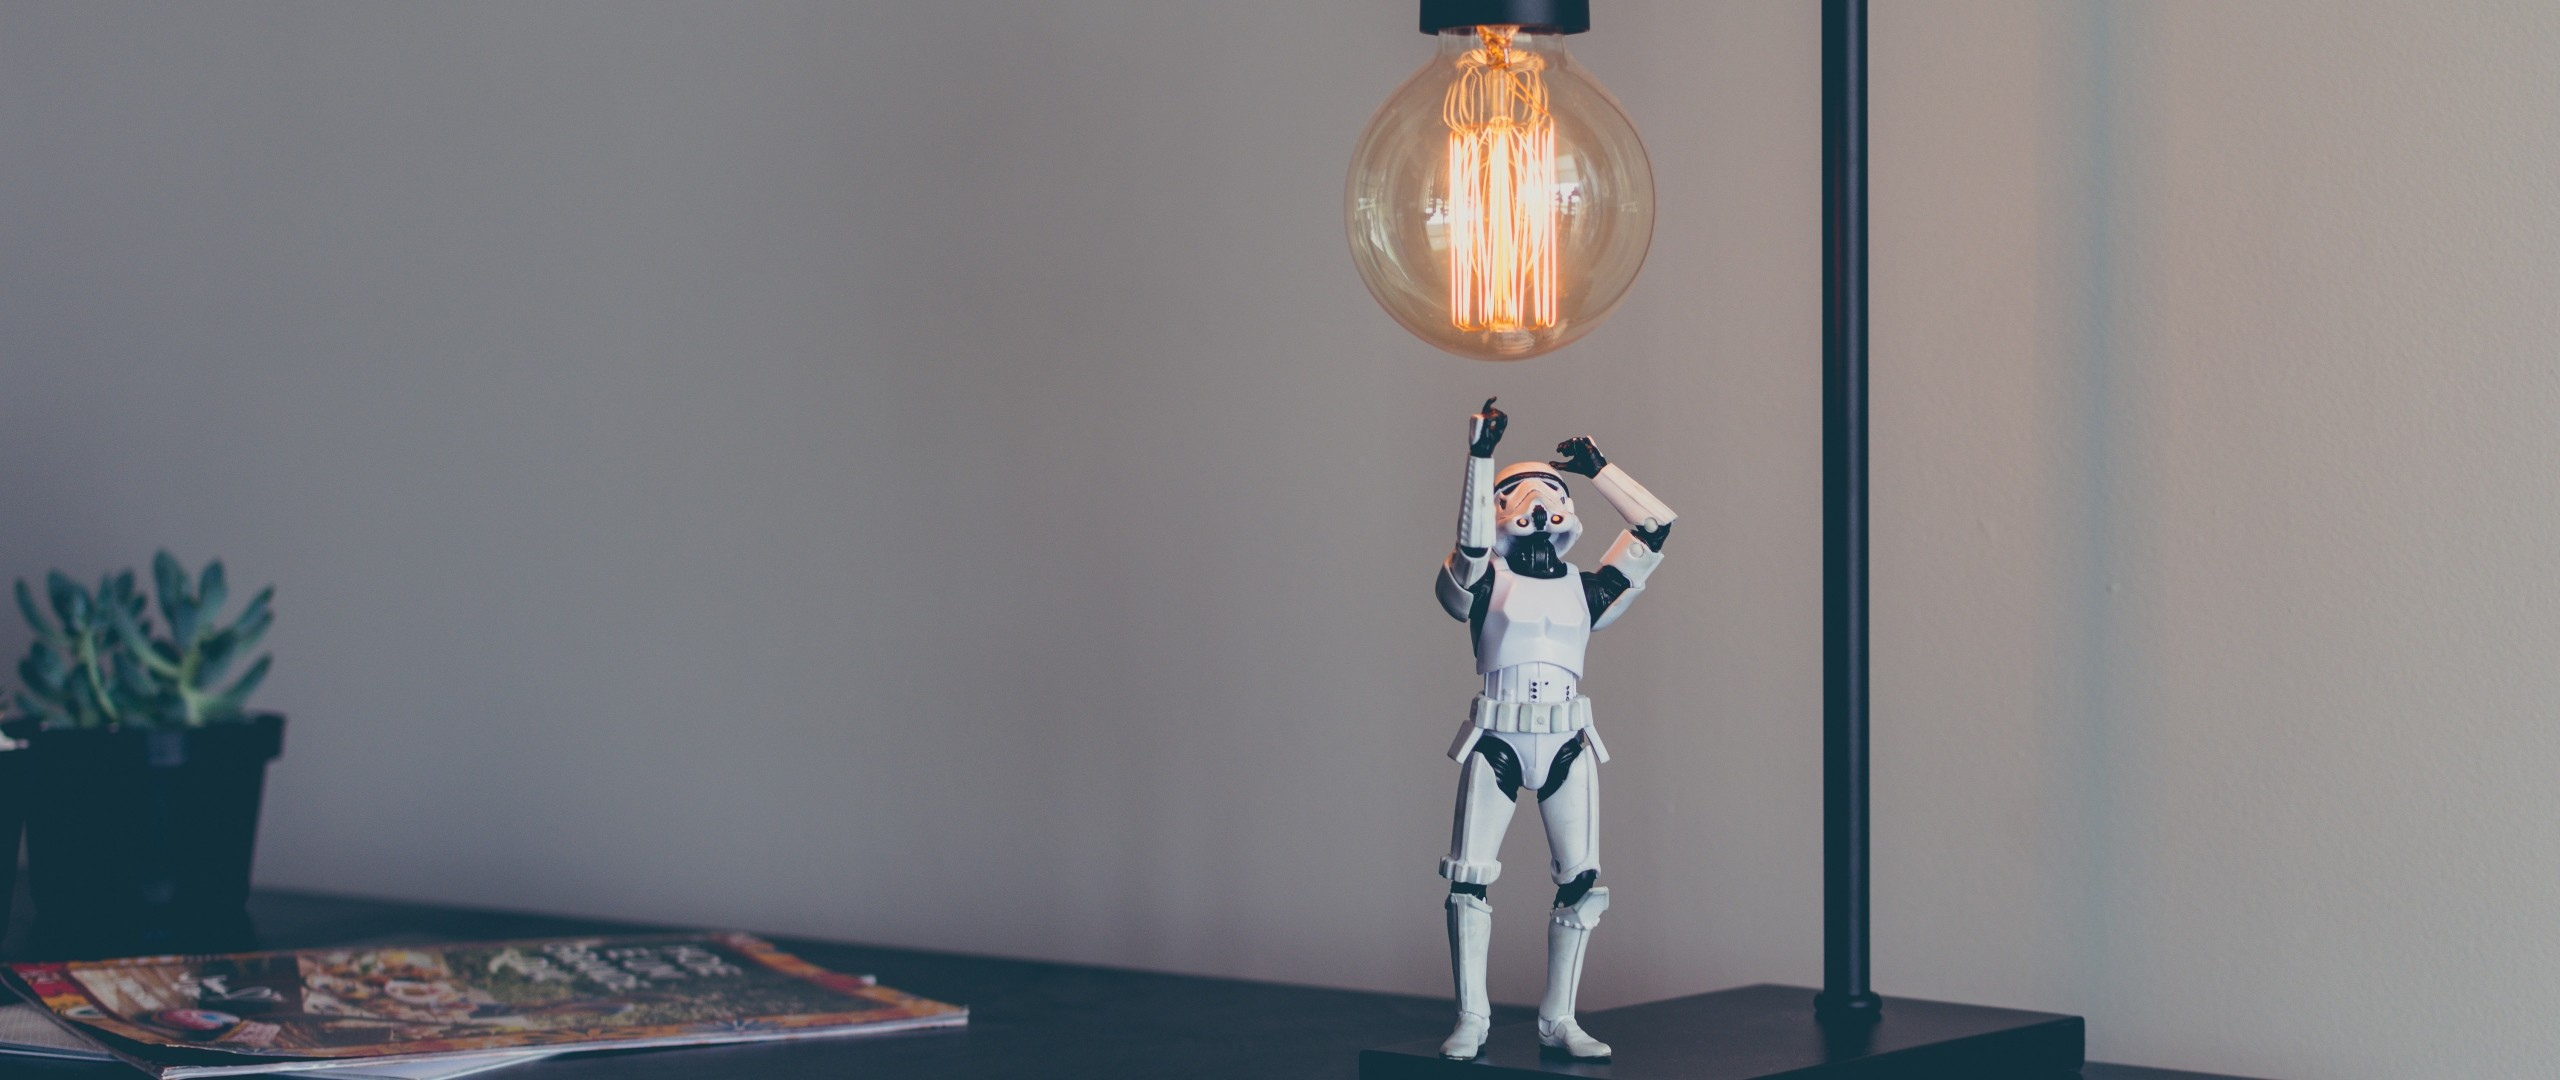 2560x1080 Preview wallpaper stormtrooper, star wars, lamp, toy